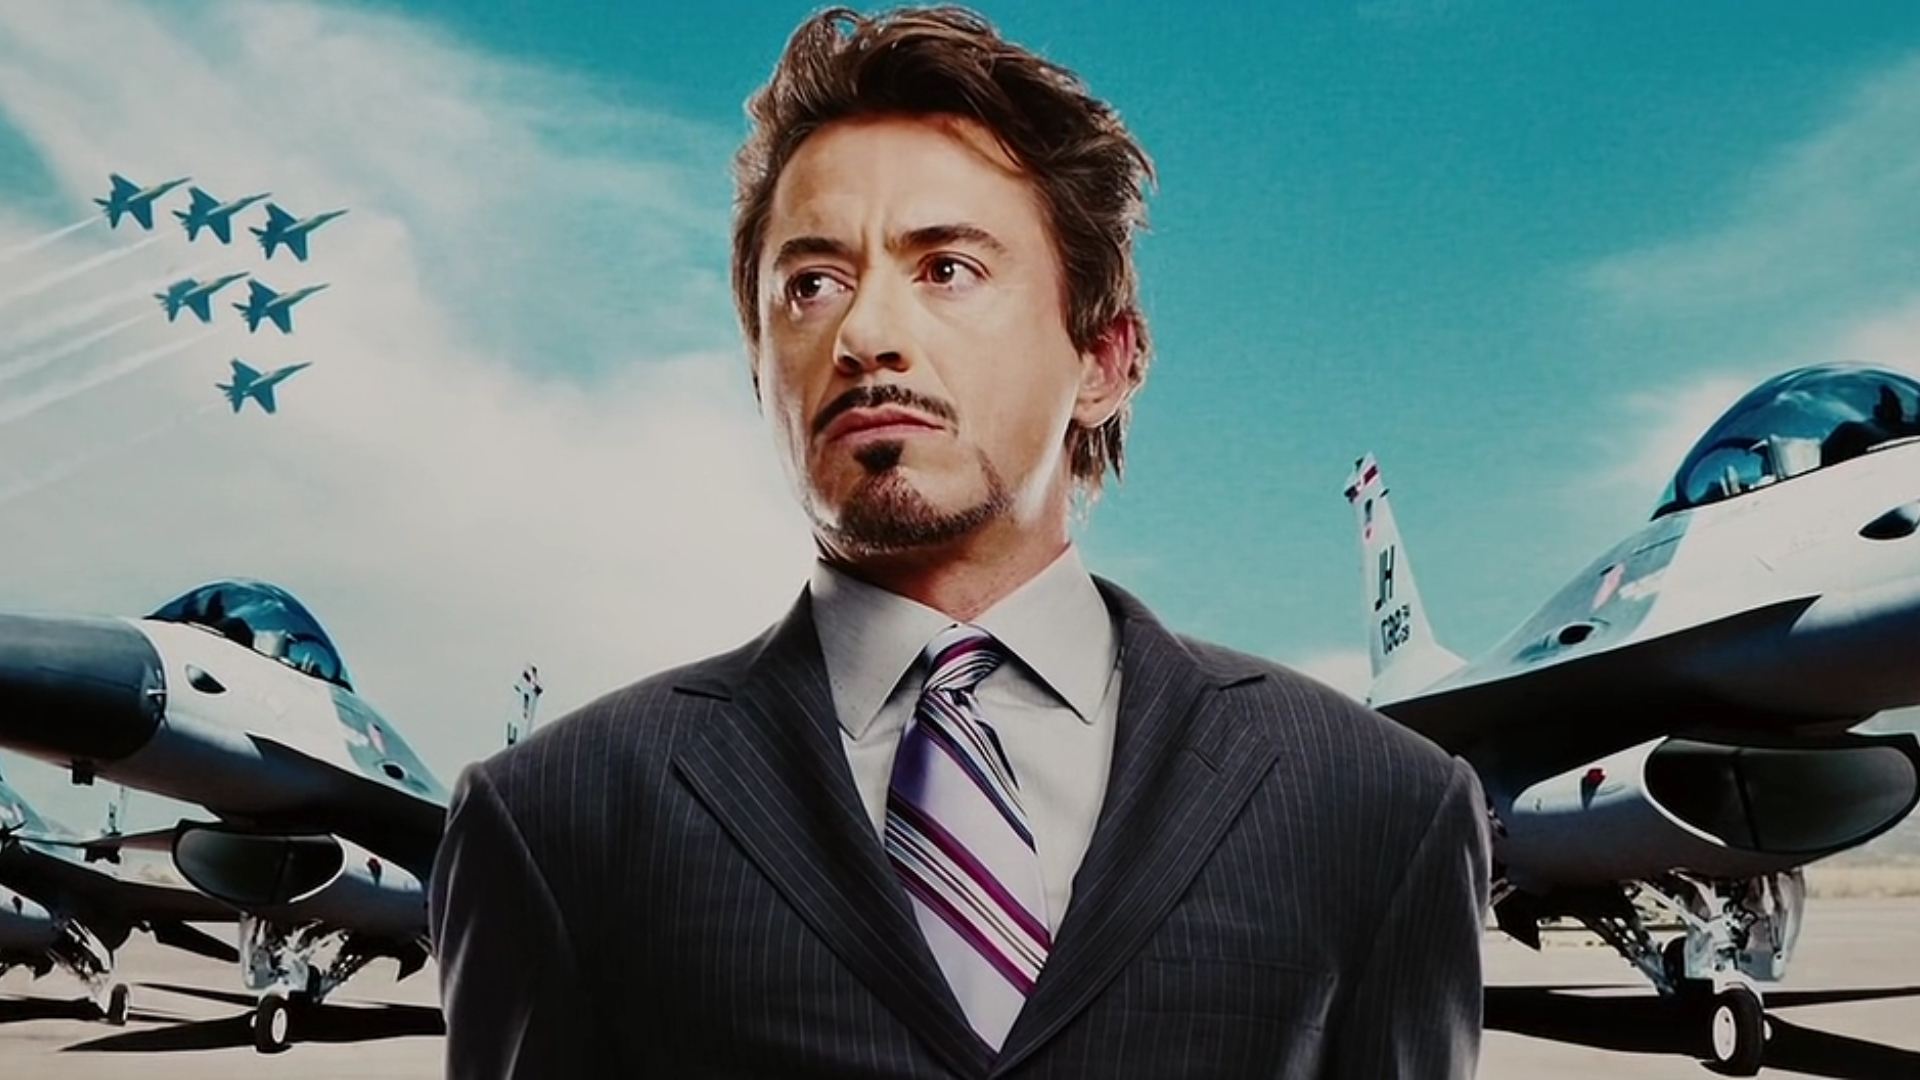 iron man Robert Downey